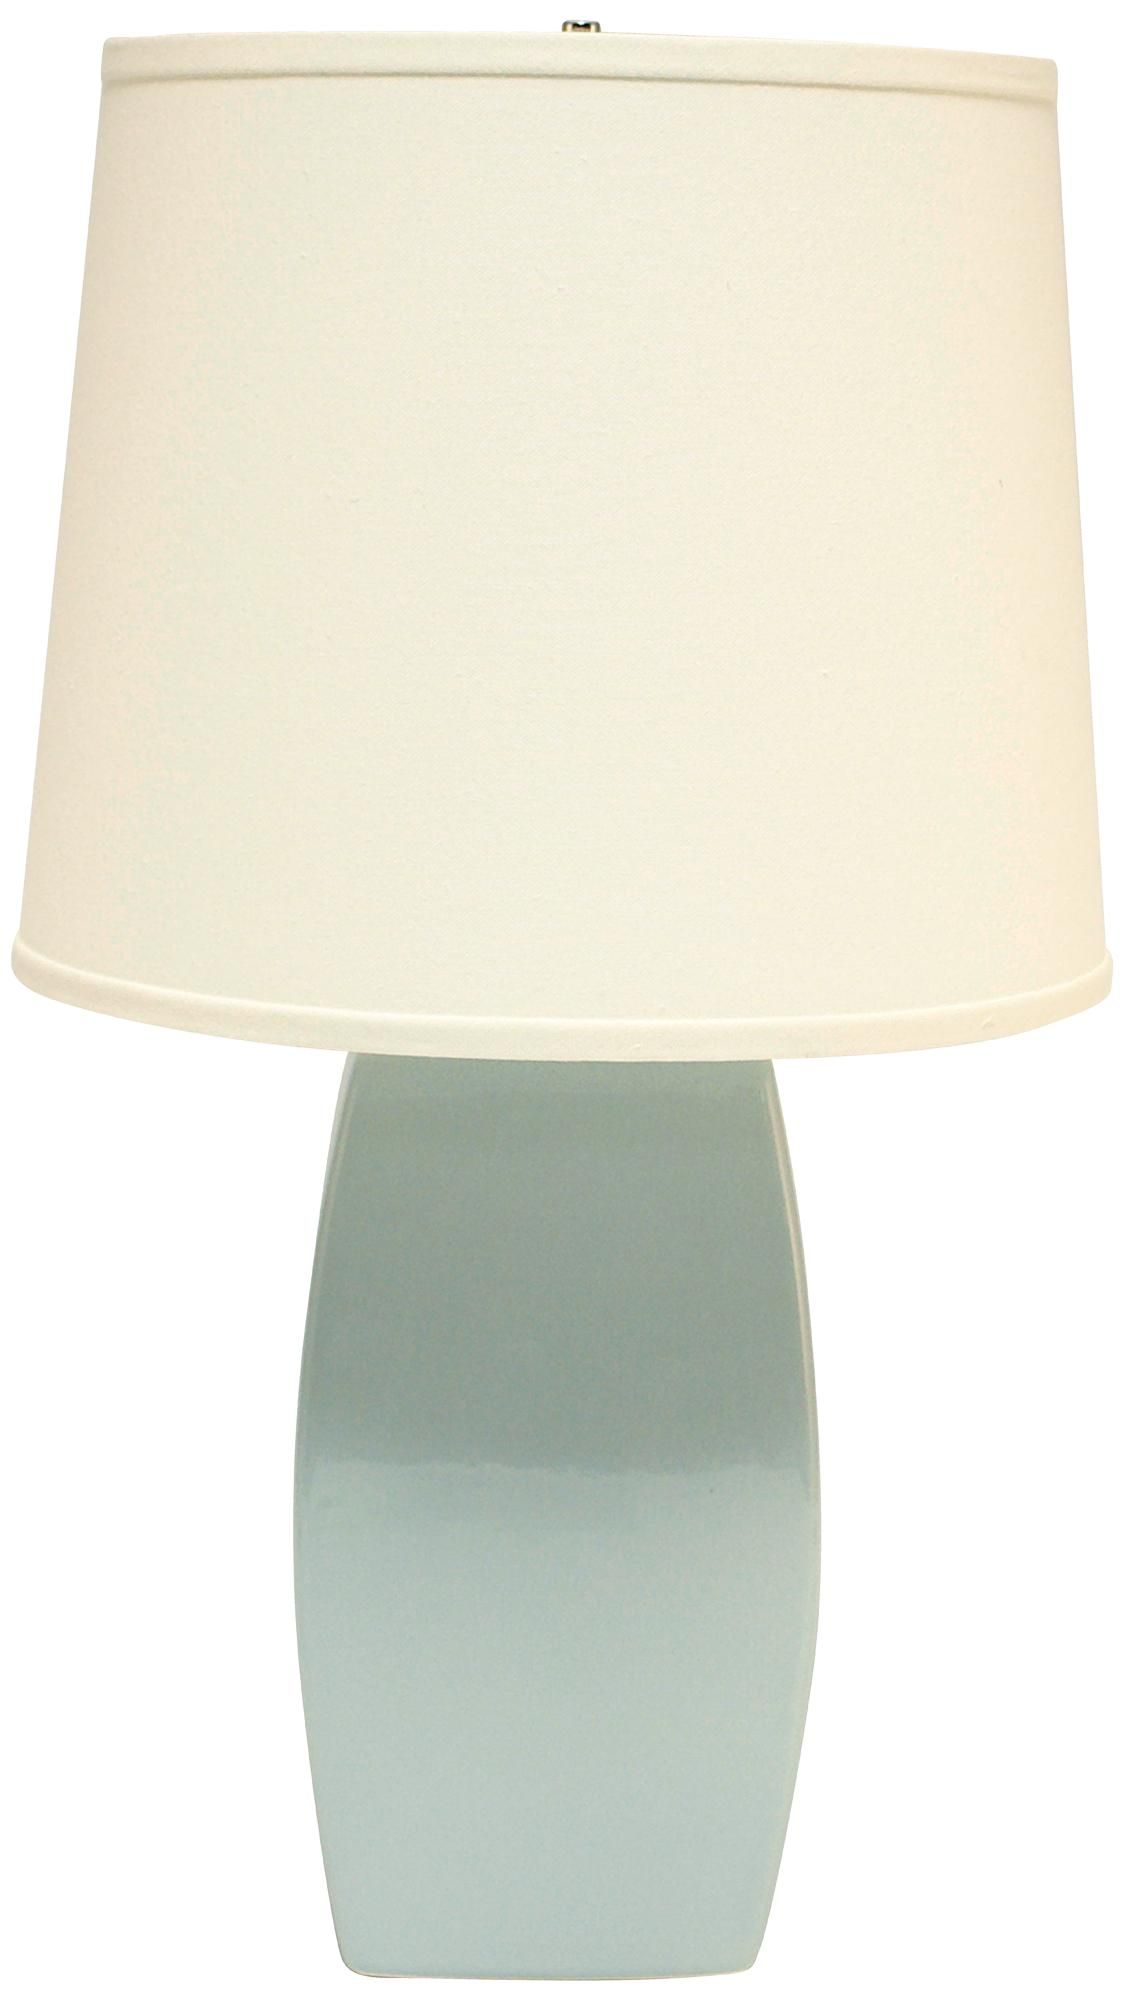 Haeger Potteries Mist Ceramic Soft Rectangle Table Lamp Decorating